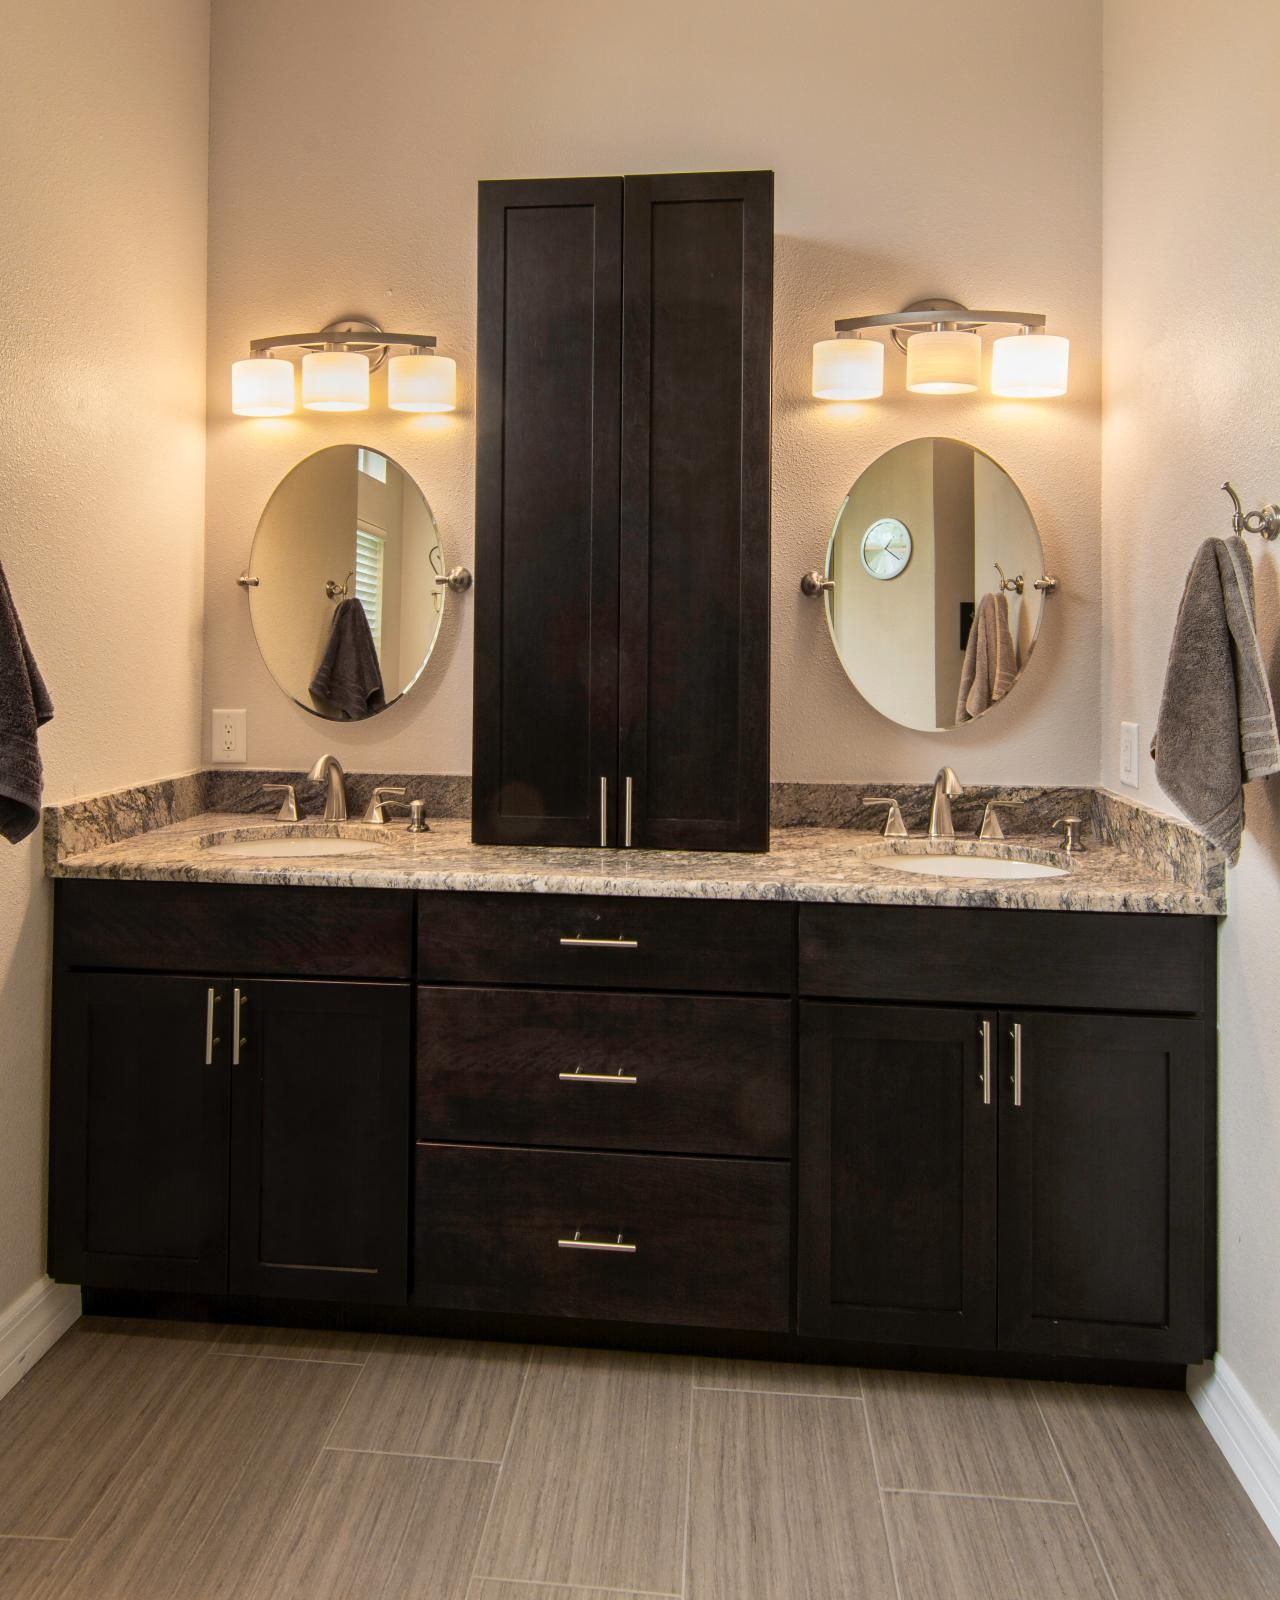 This Master Bathroom Features A Double Sink Vanity With Dark Brown Wooden  Cabinets And Neutral Granite Countertops. A Convenient Storage Tower Sits  Between ...